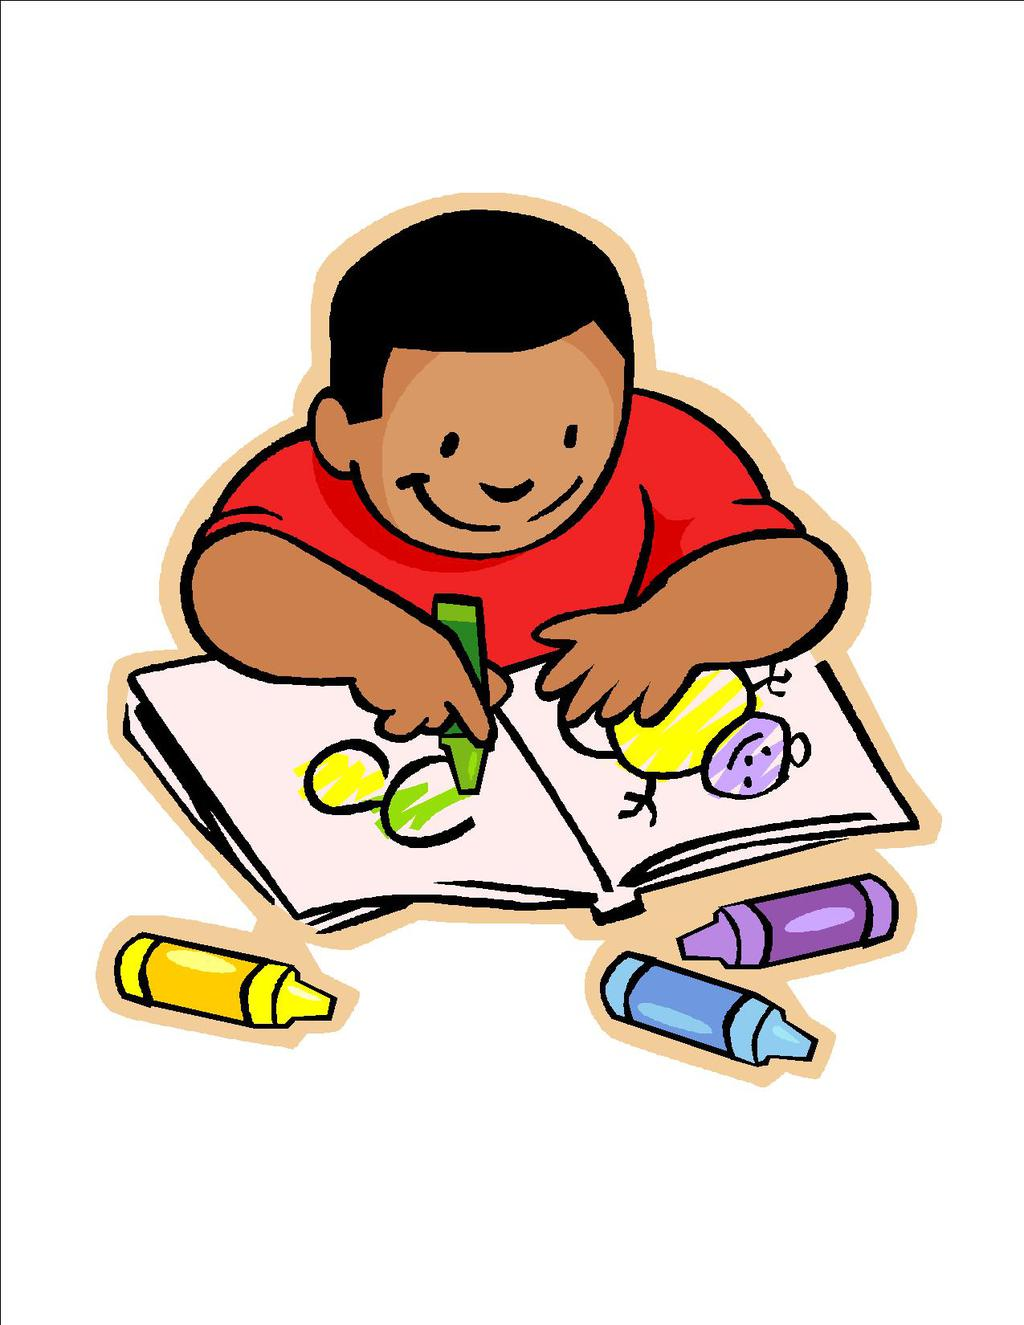 Child working clipart png library library Kids Working Clipart School Work Homework - Clipart1001 - Free Cliparts png library library